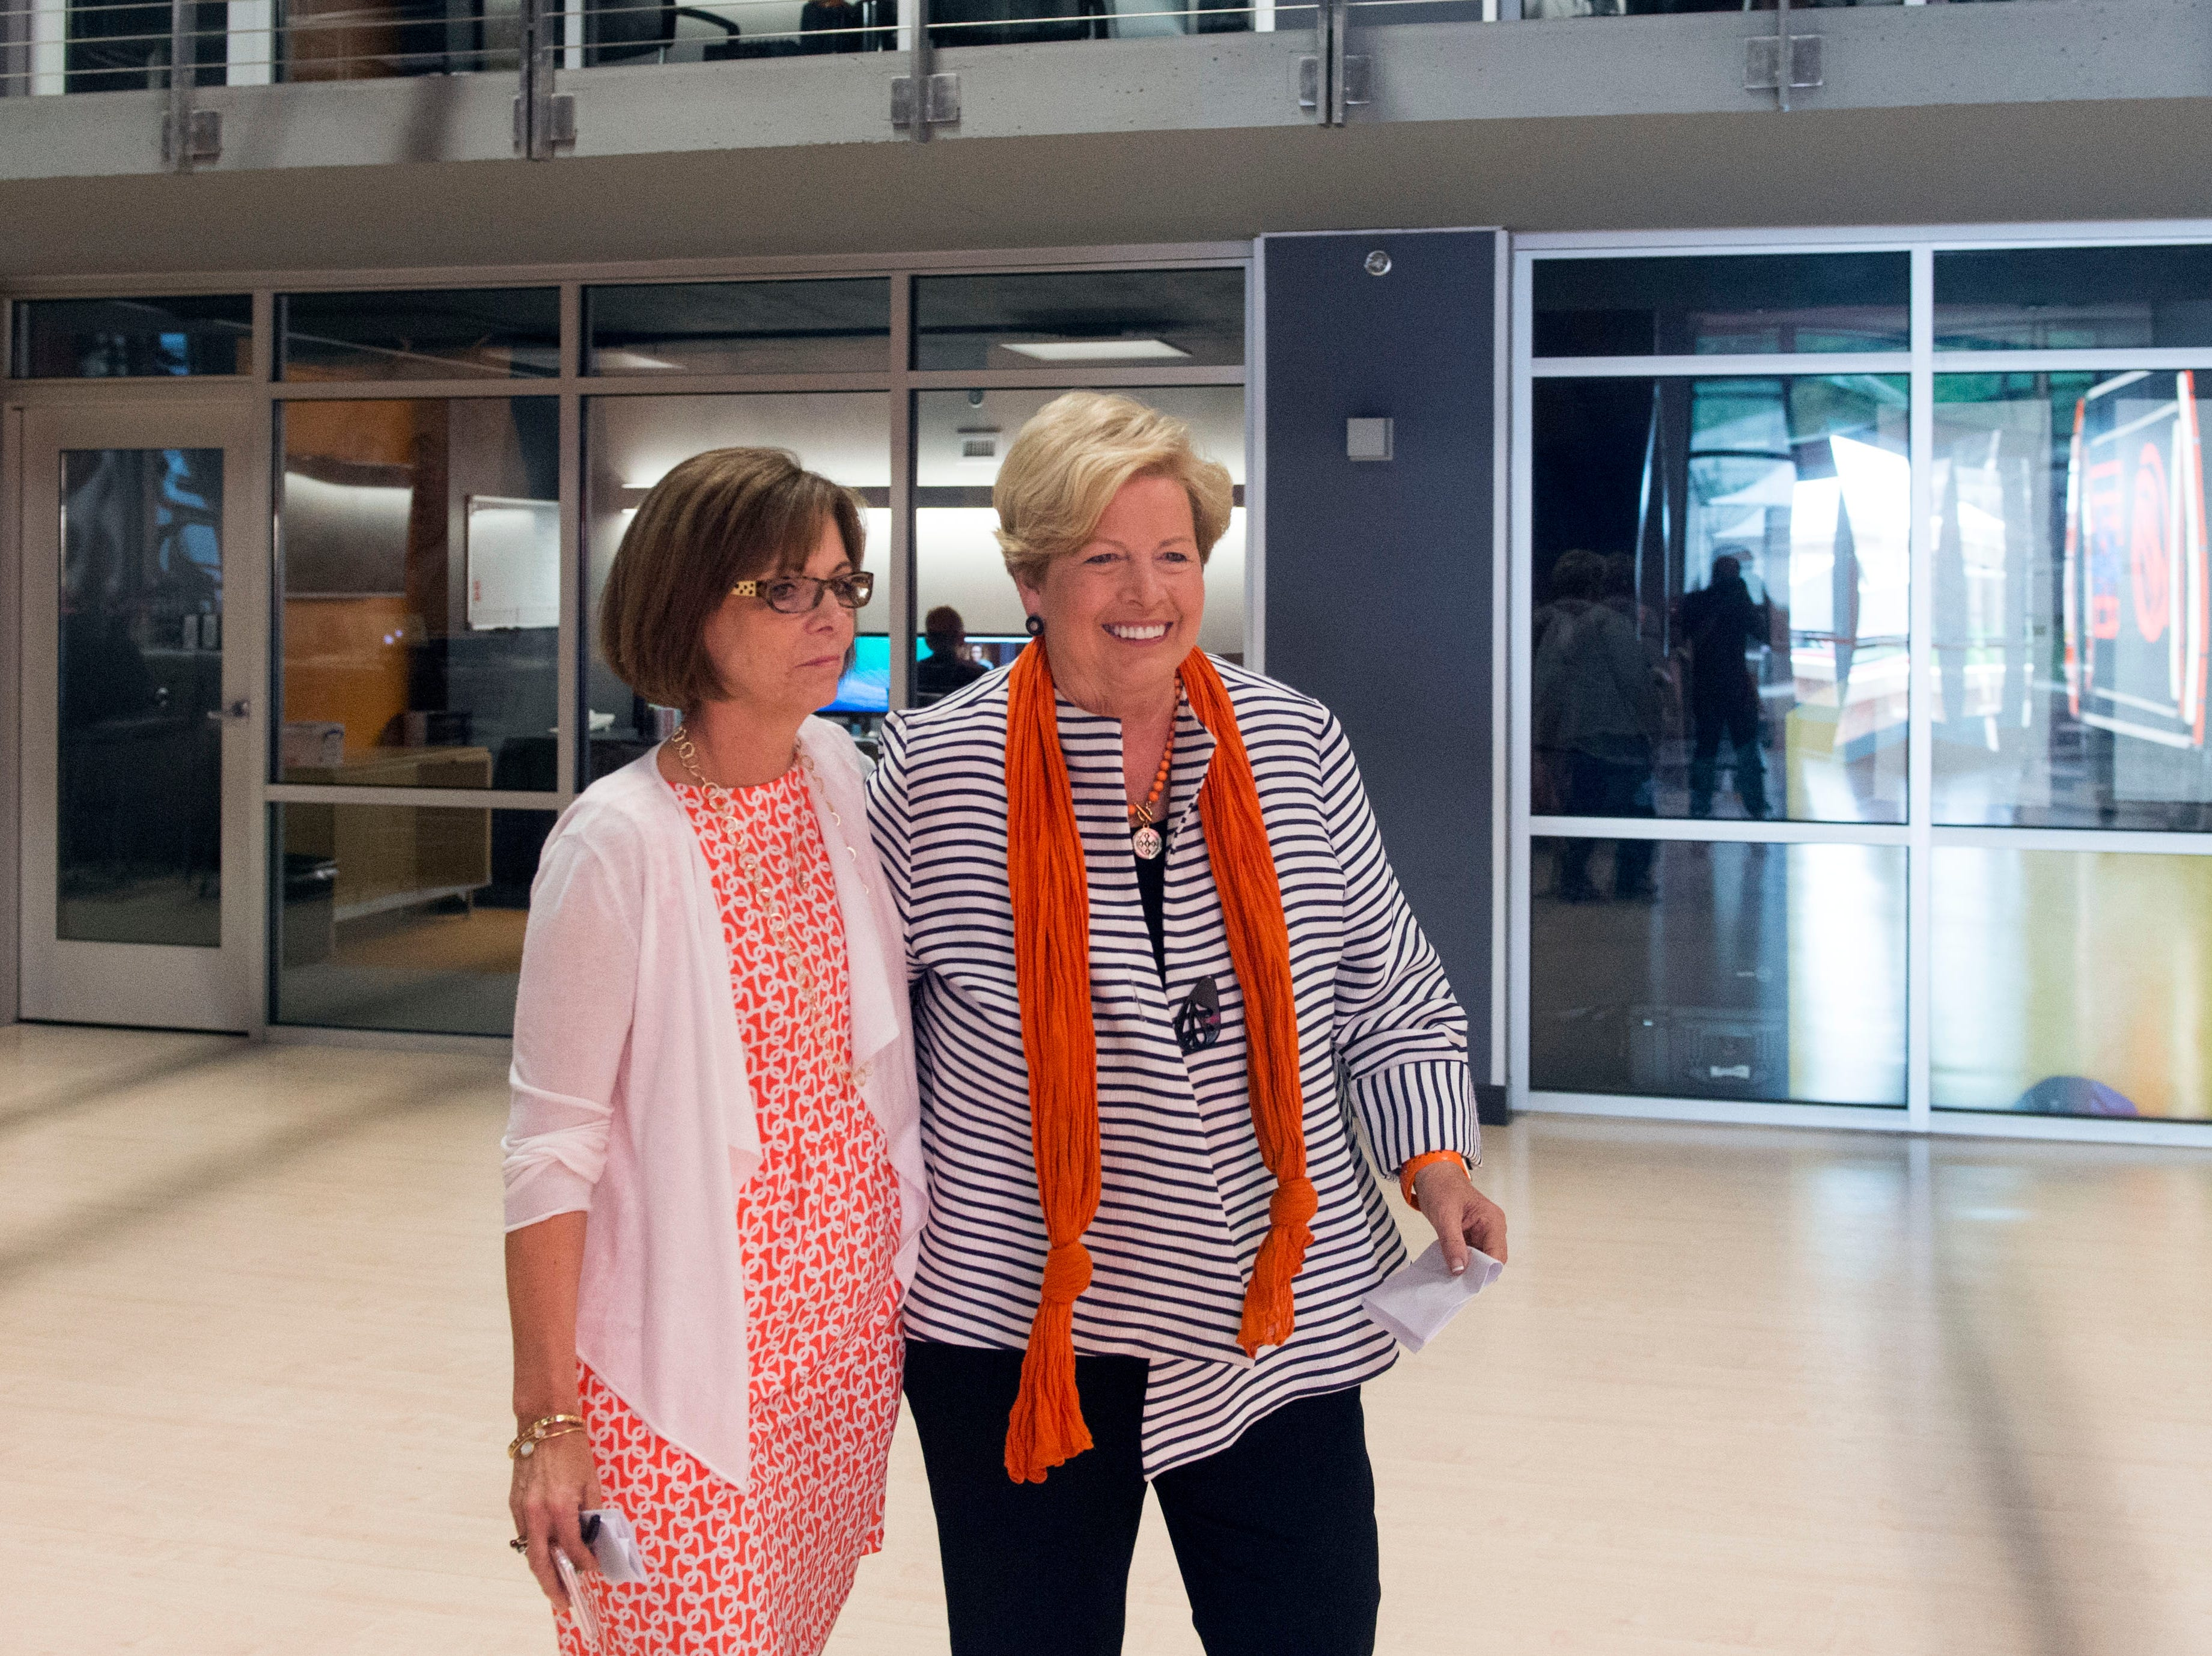 Margie Nichols, University of Tennessee Vice Chancellor of Communications, escorts Joan Cronan, former athletic director for the Lady Vols, to a news conference on Tuesday, June 28, 2016 to share her thoughts on Pat Summitt.